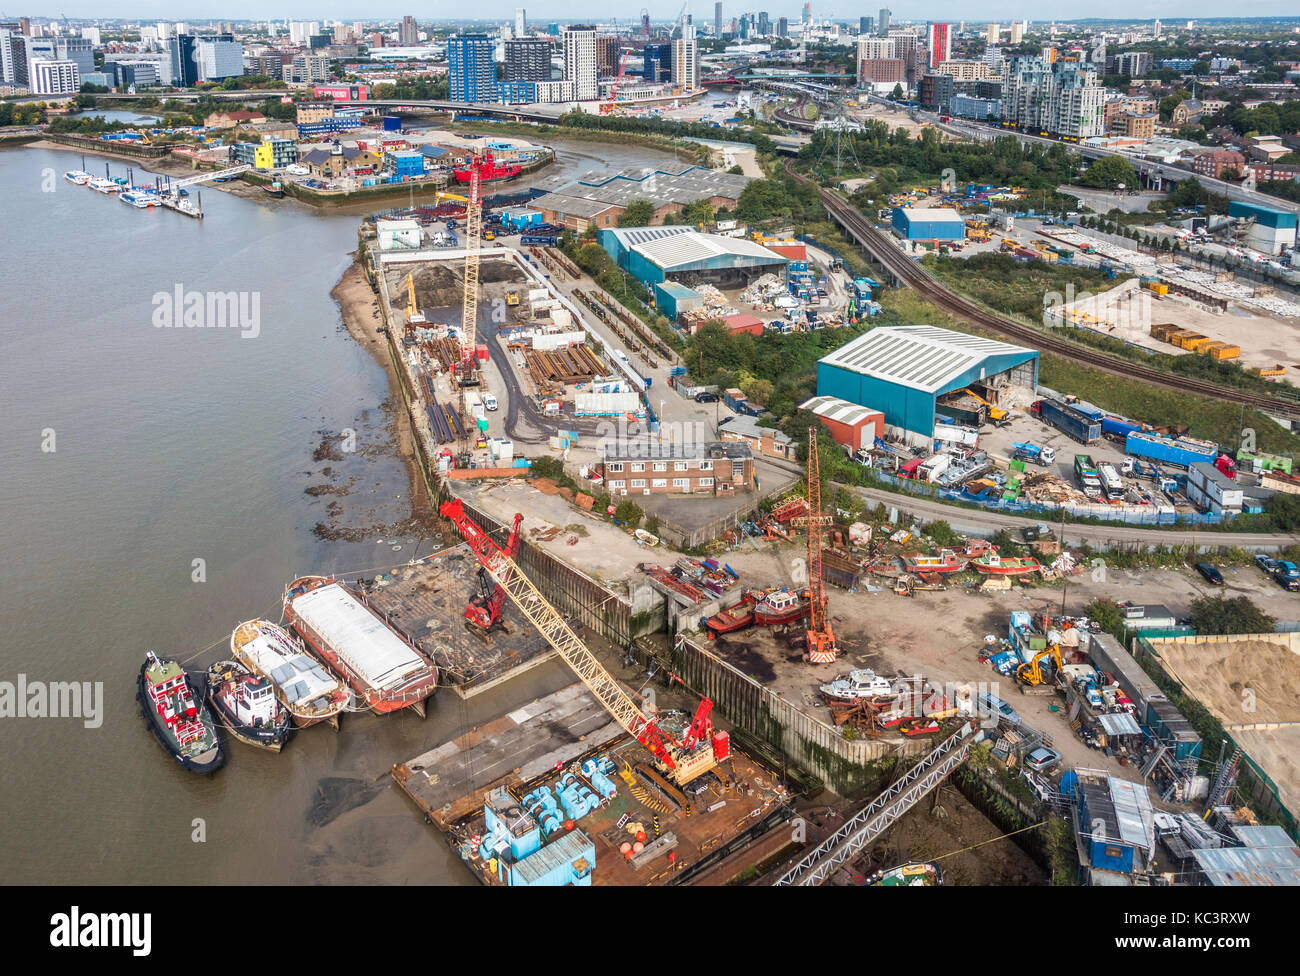 View from above of Royal Victoria Docks and Bow Creek tidal estuary, which divides the East London Boroughs of Newham - Stock Image